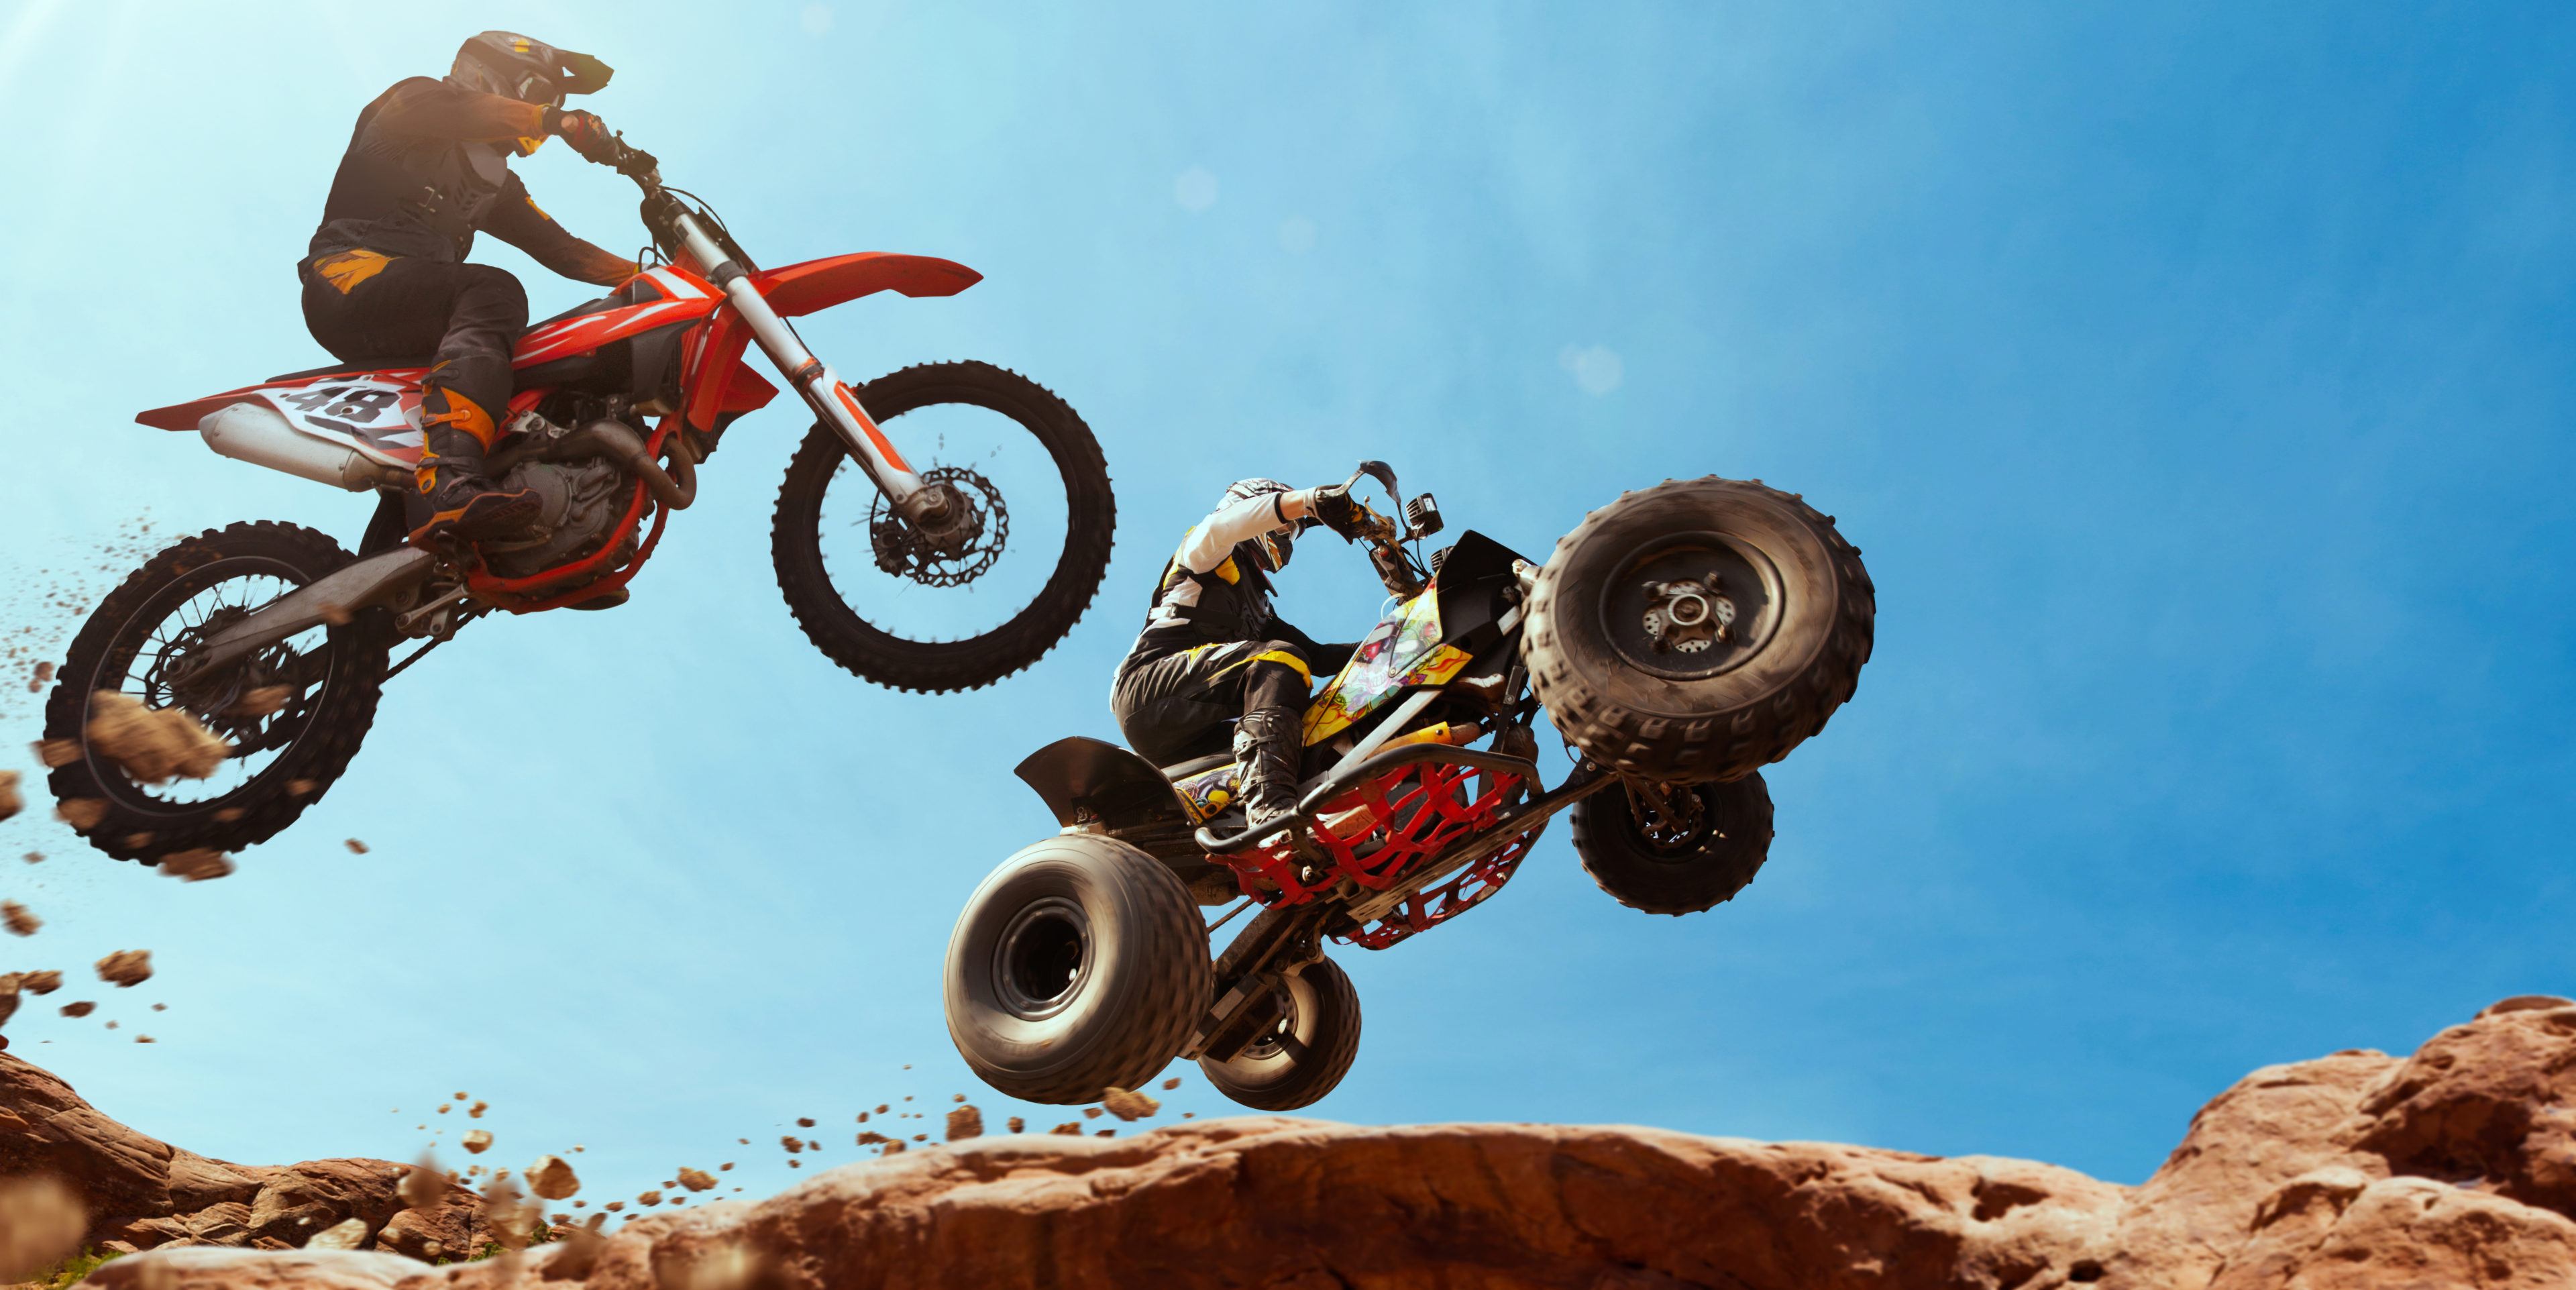 ATV Rider in the action with motocross rider.